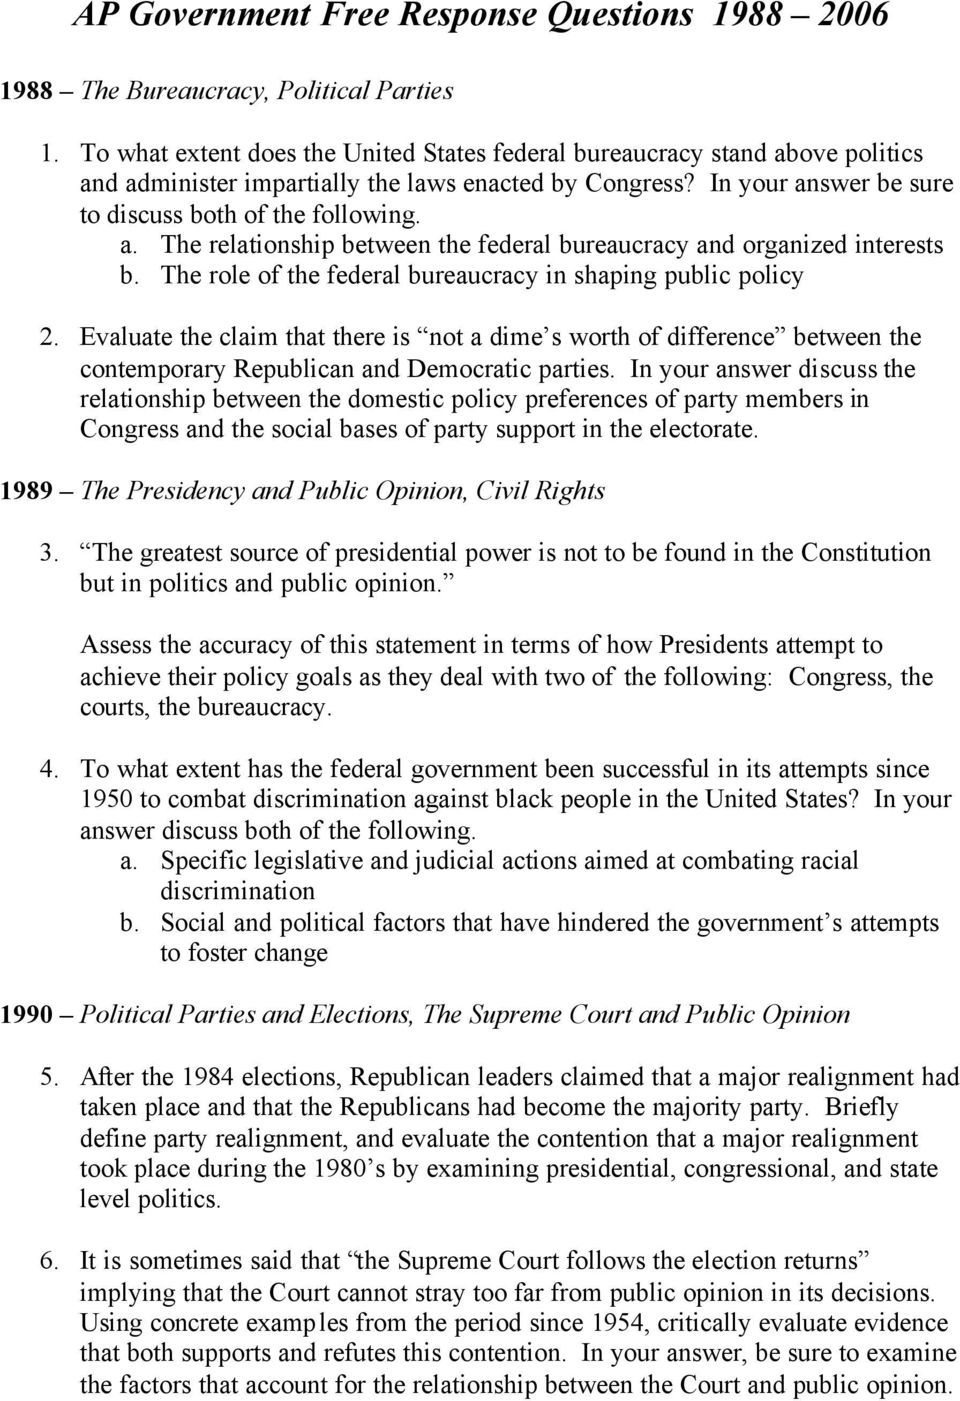 Ap Government Free Response Questions Pdf Free Download